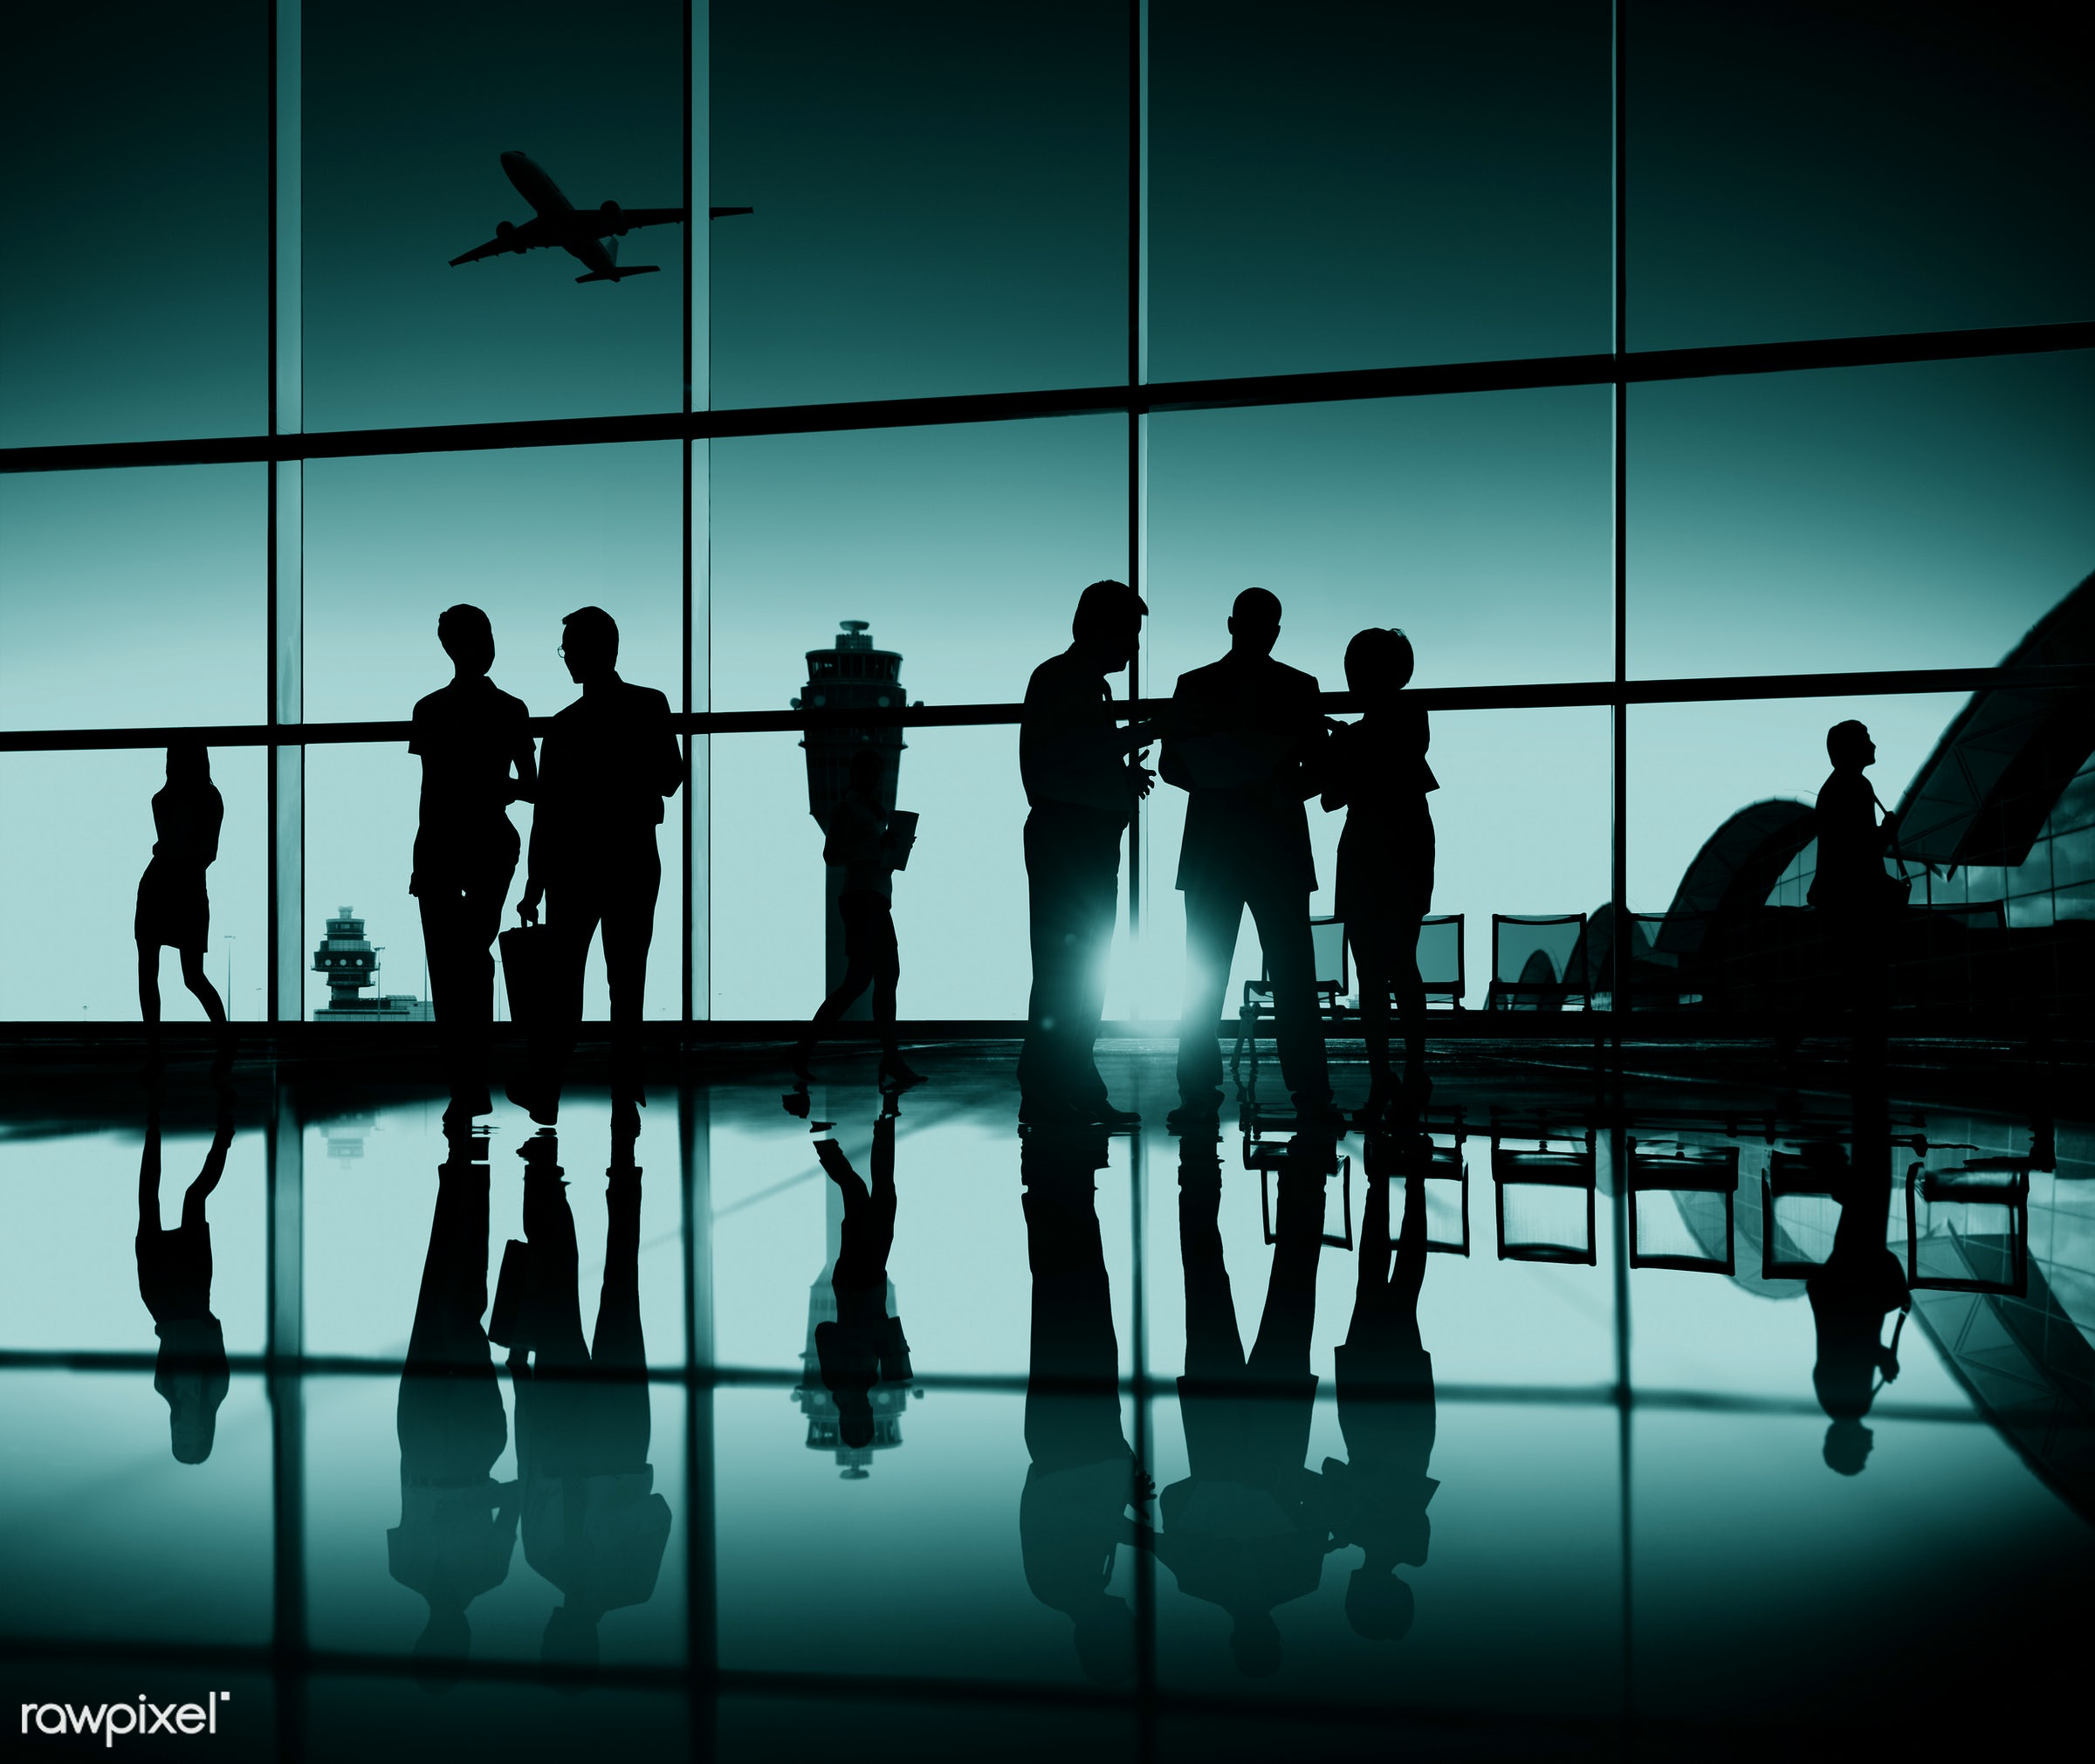 aerospace industry, agreement, air traffic control tower, air vehicle, airplane, airport, airport lounge, arrival departure...